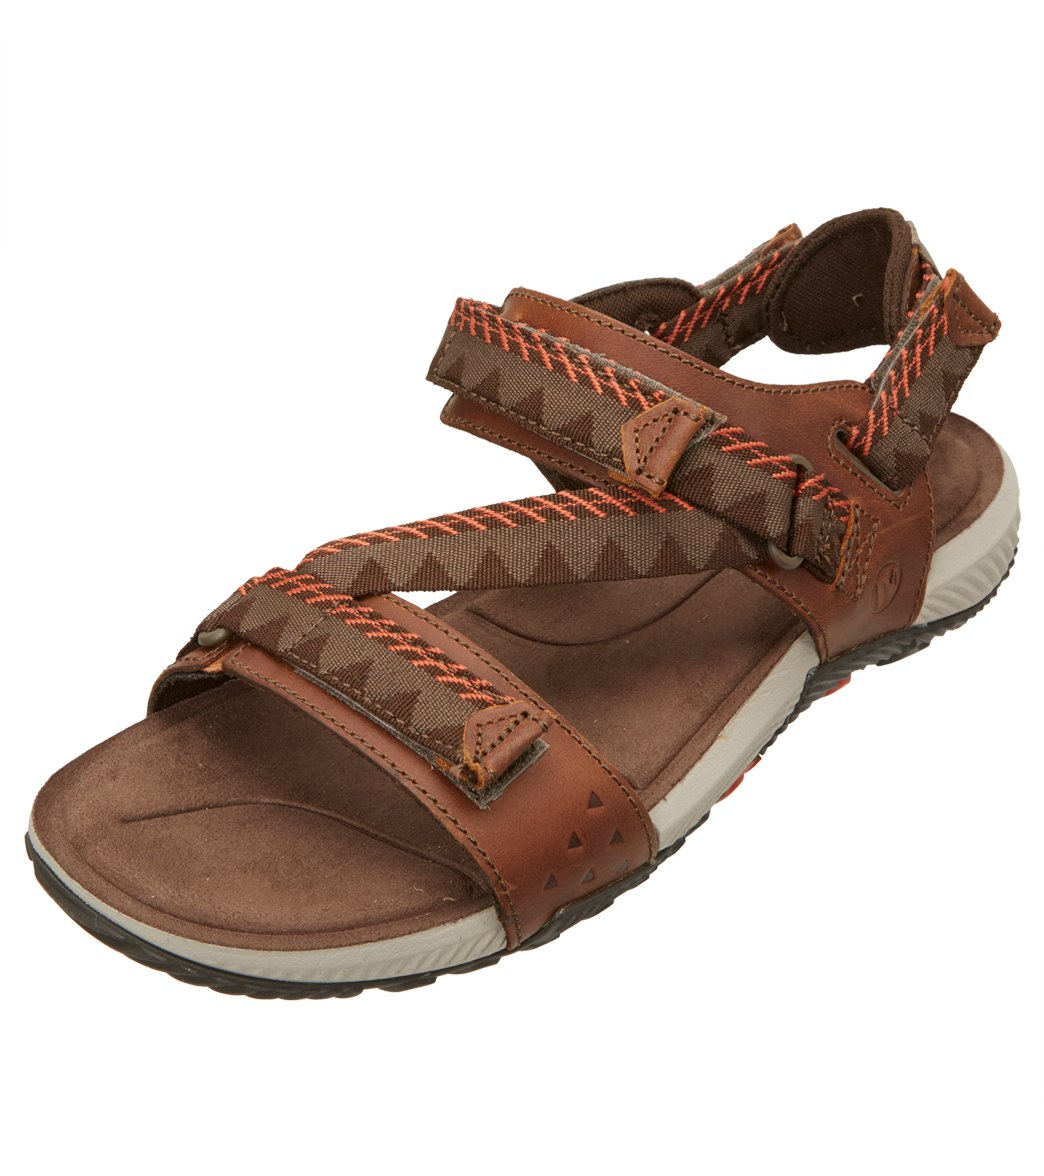 6caebe28a45 Merrell Men s Terrant Convertible Sandal at SwimOutlet.com - Free Shipping